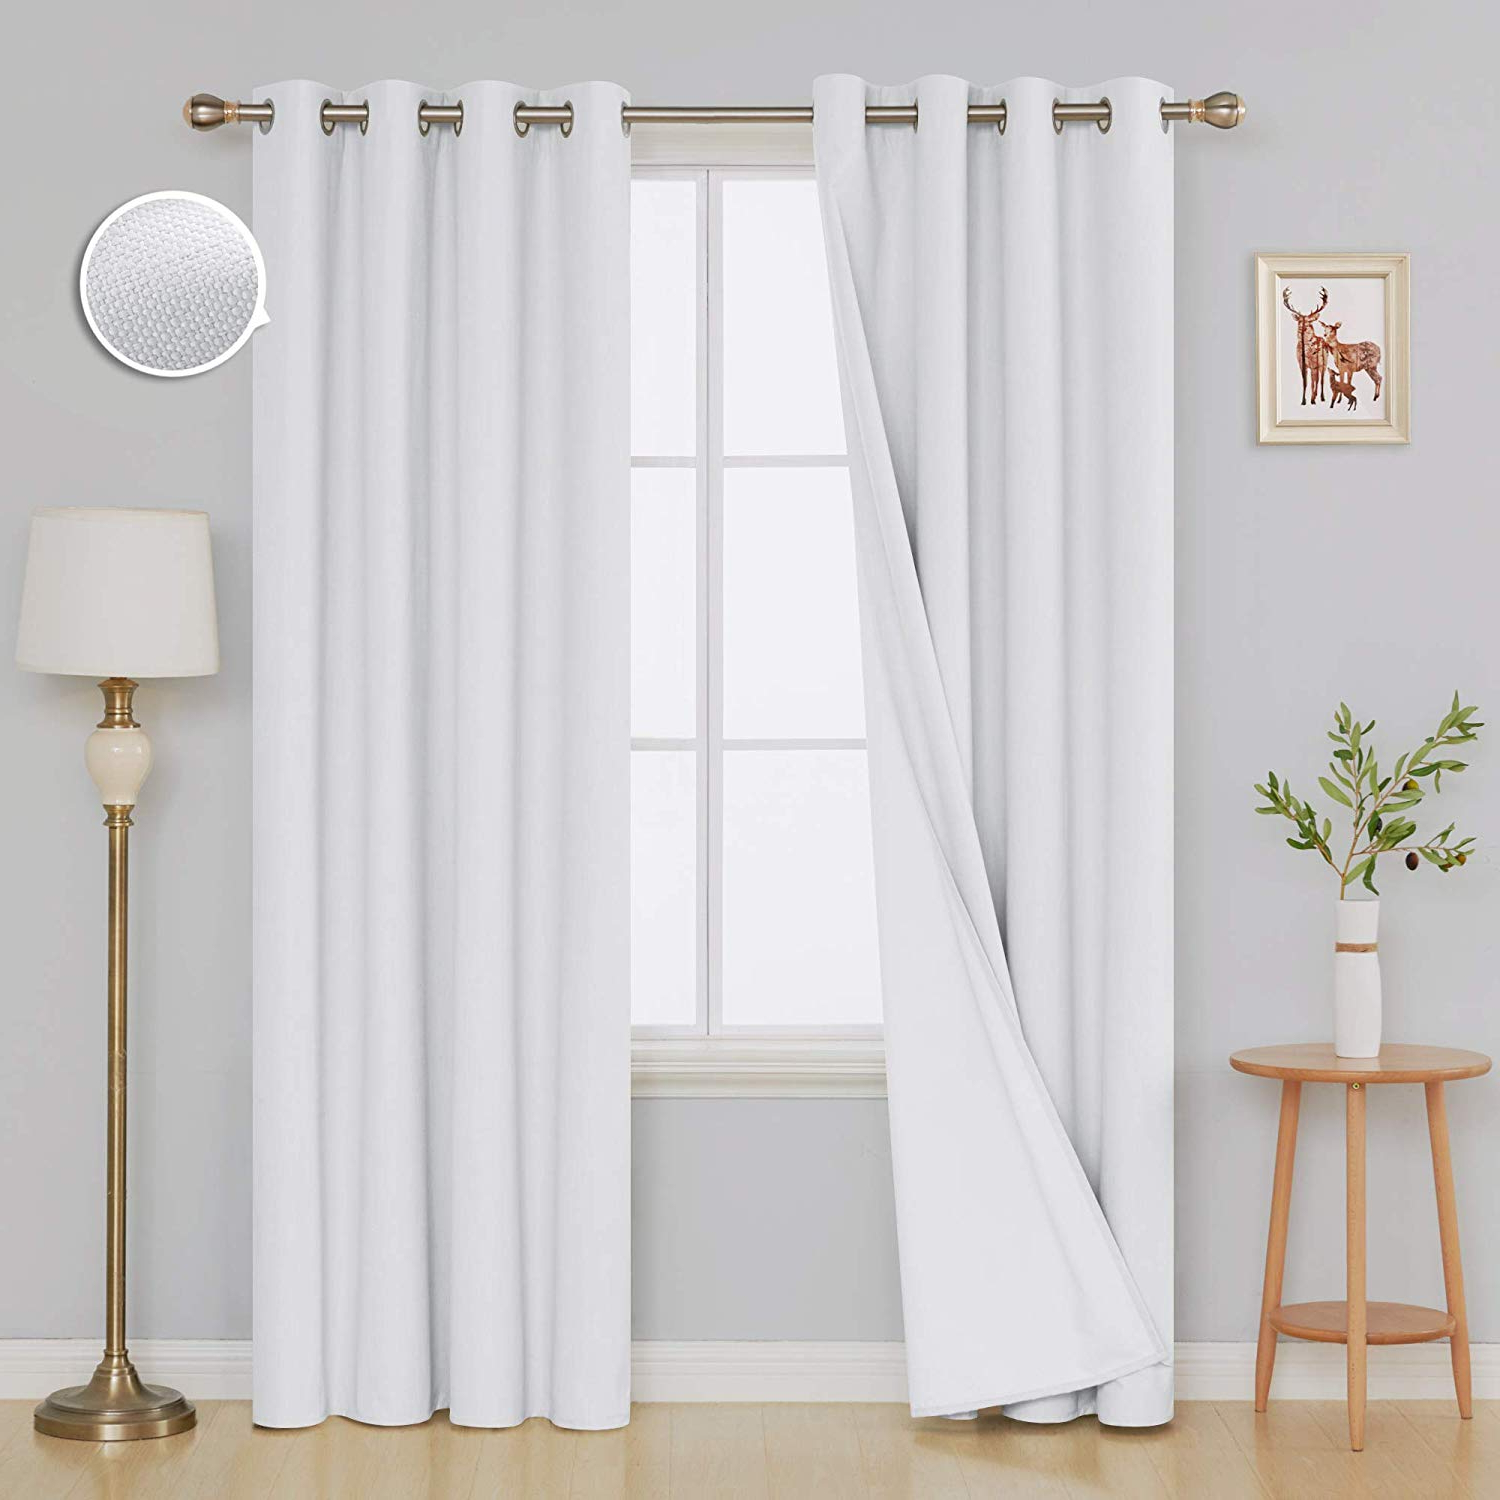 Deconovo Pure White Full Blackout Curtains Pair Thermal Insulated Blackout Curtain Panels With White Coating Layer For Bedroom 52w X 95l Inch Pure With Regard To Fashionable Thermal Insulated Blackout Curtain Pairs (View 4 of 20)